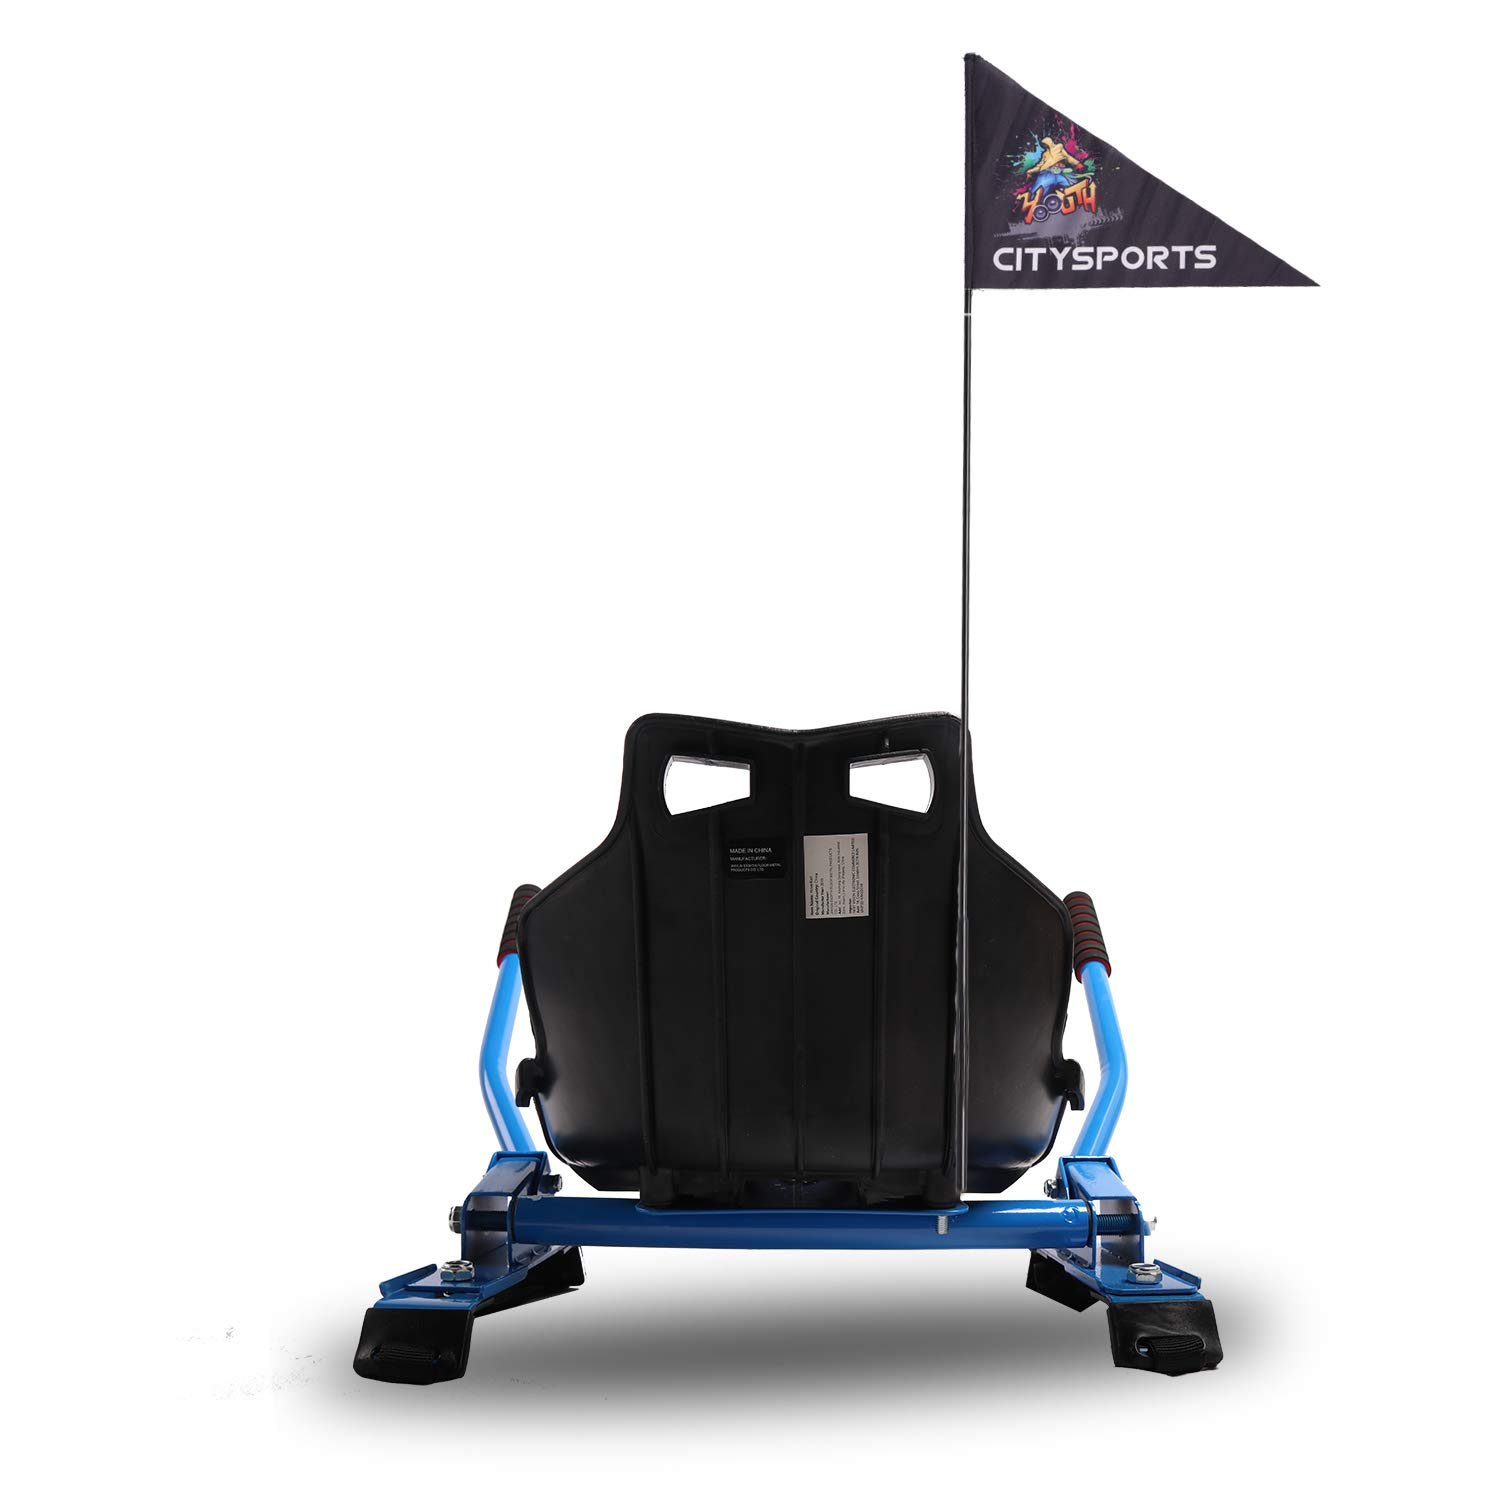 CITYSPORTS Hoerkart-Go Kart Conversion Kit for Hoverboards Safer For Kids All Ages HoverBoard Not Included All Heights Self Balancing Scooter Compatible with All Hoverboards